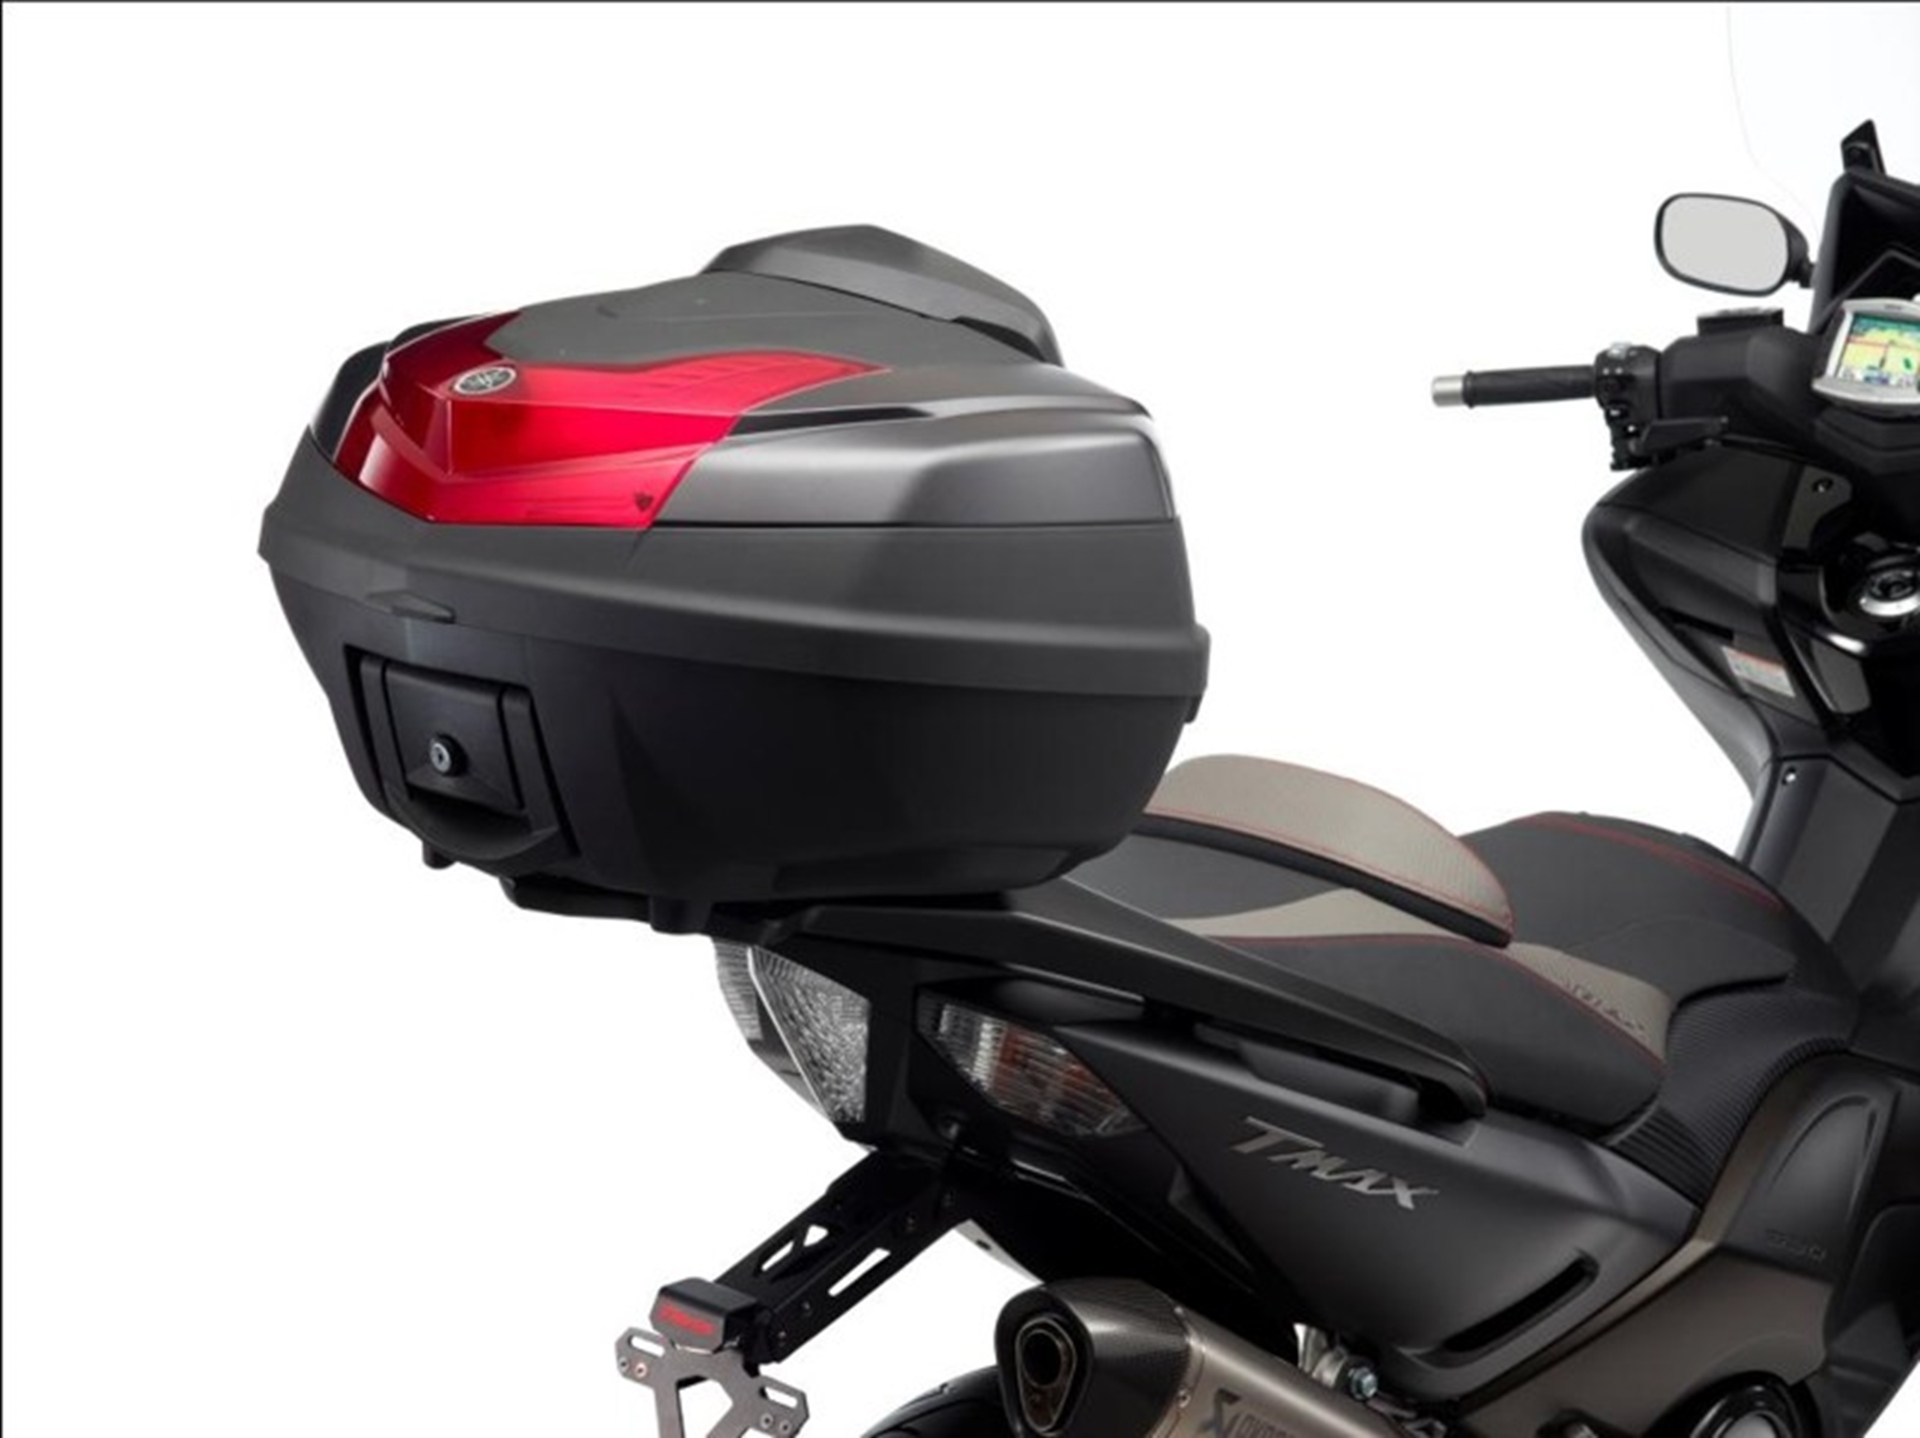 New Yamaha Top Cases for 2012